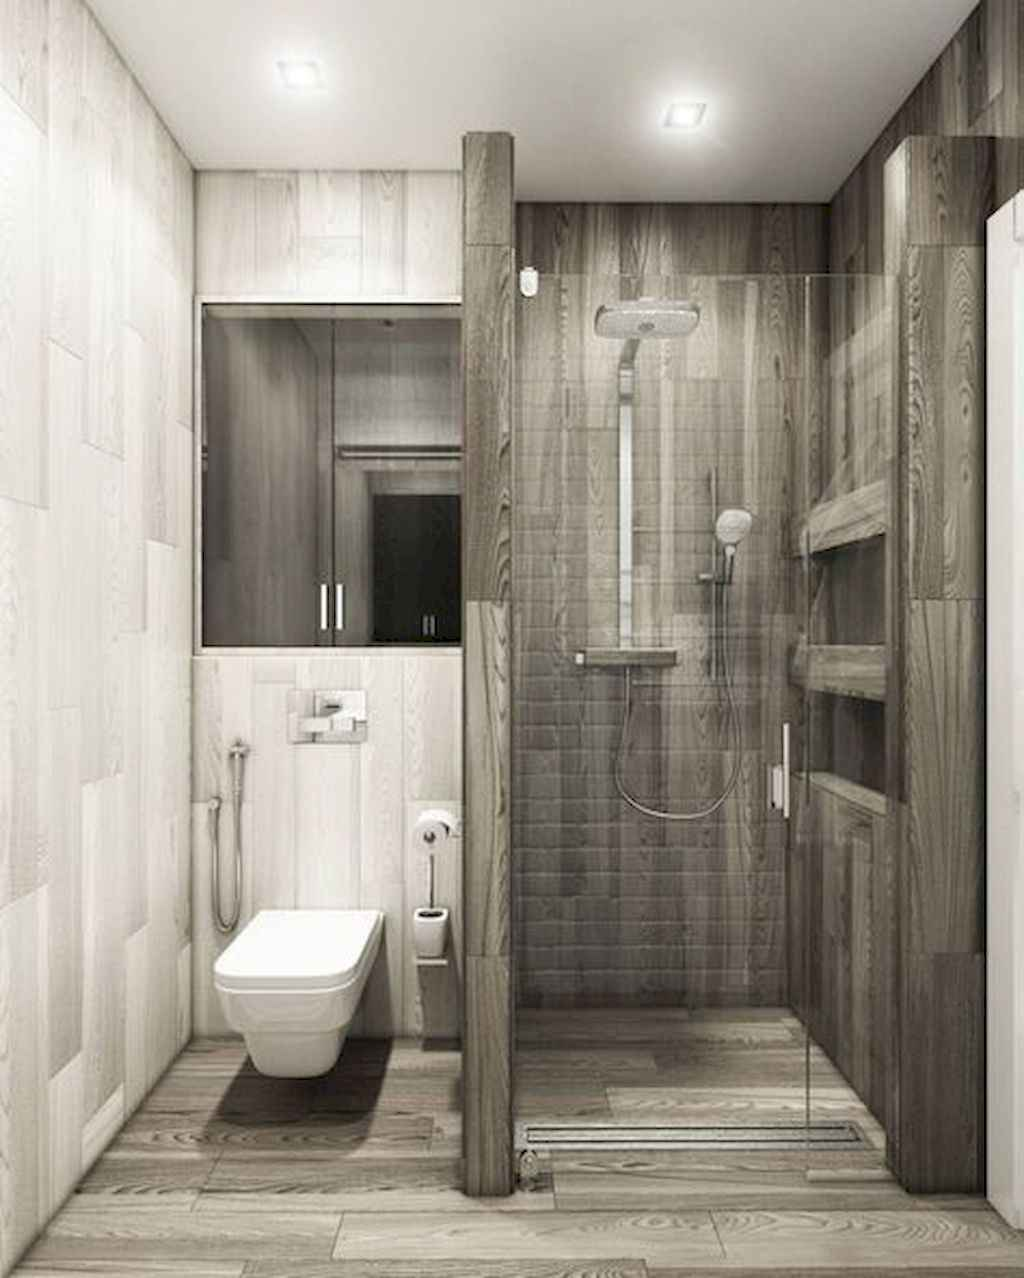 111 awesome small bathroom remodel ideas on a budget (104)